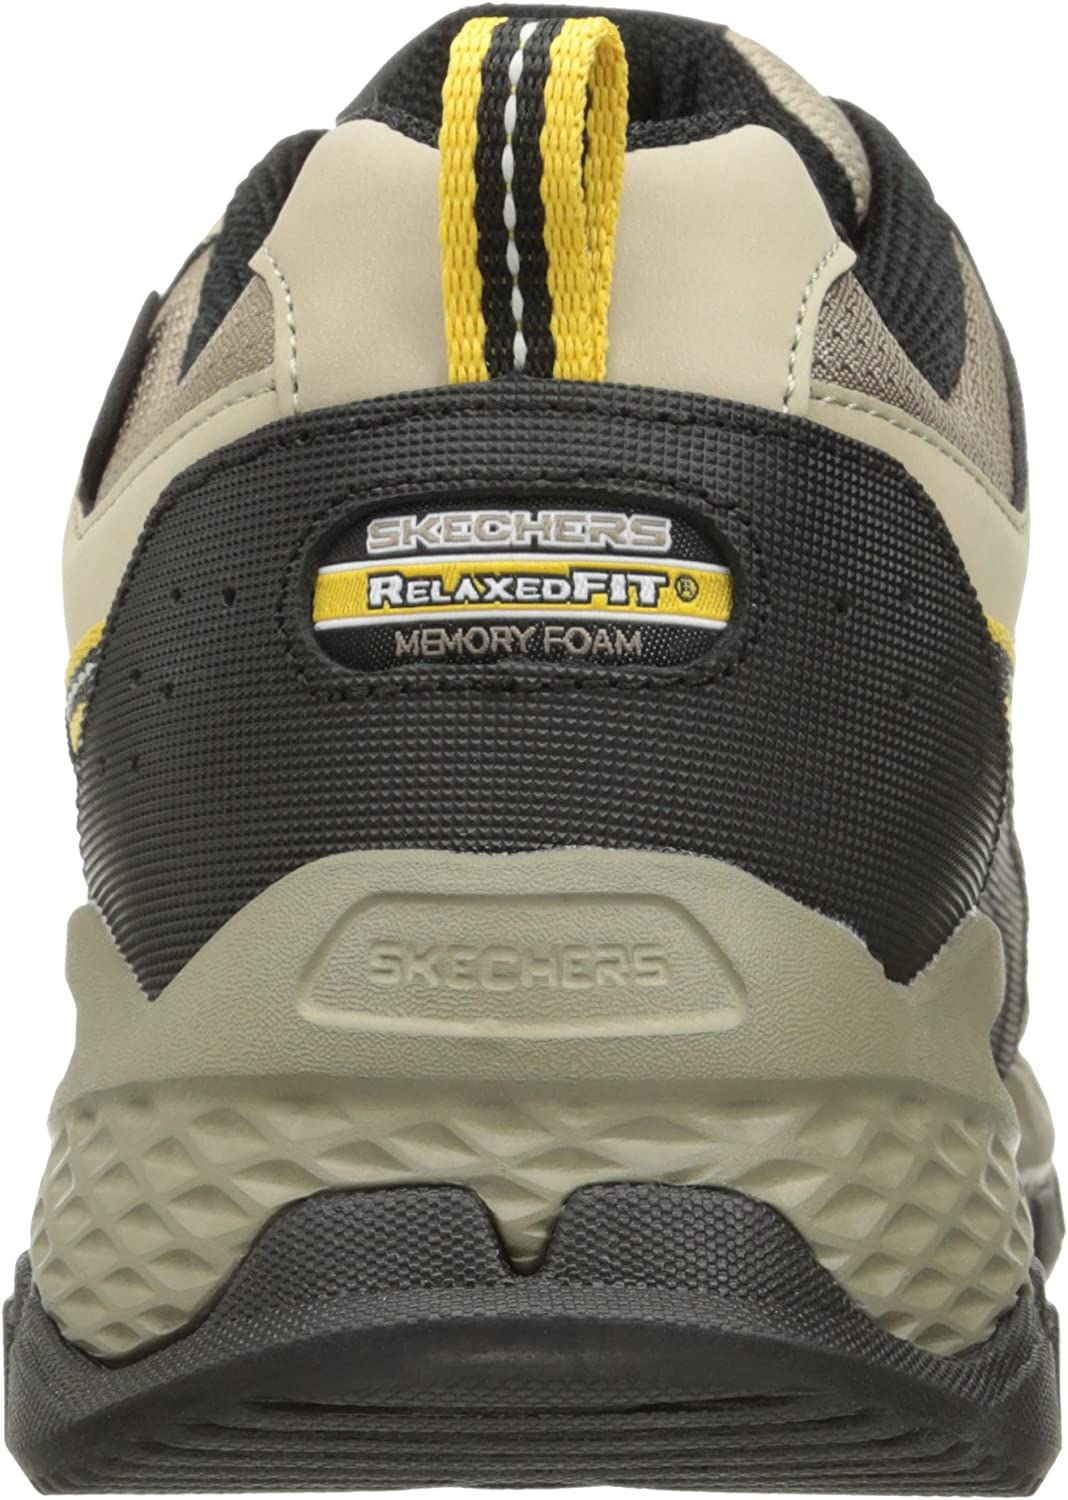 Skechers Men's Outland 2.0-Rip-Staver Hi-Top Trainers Beige Taupe Black Tpbk